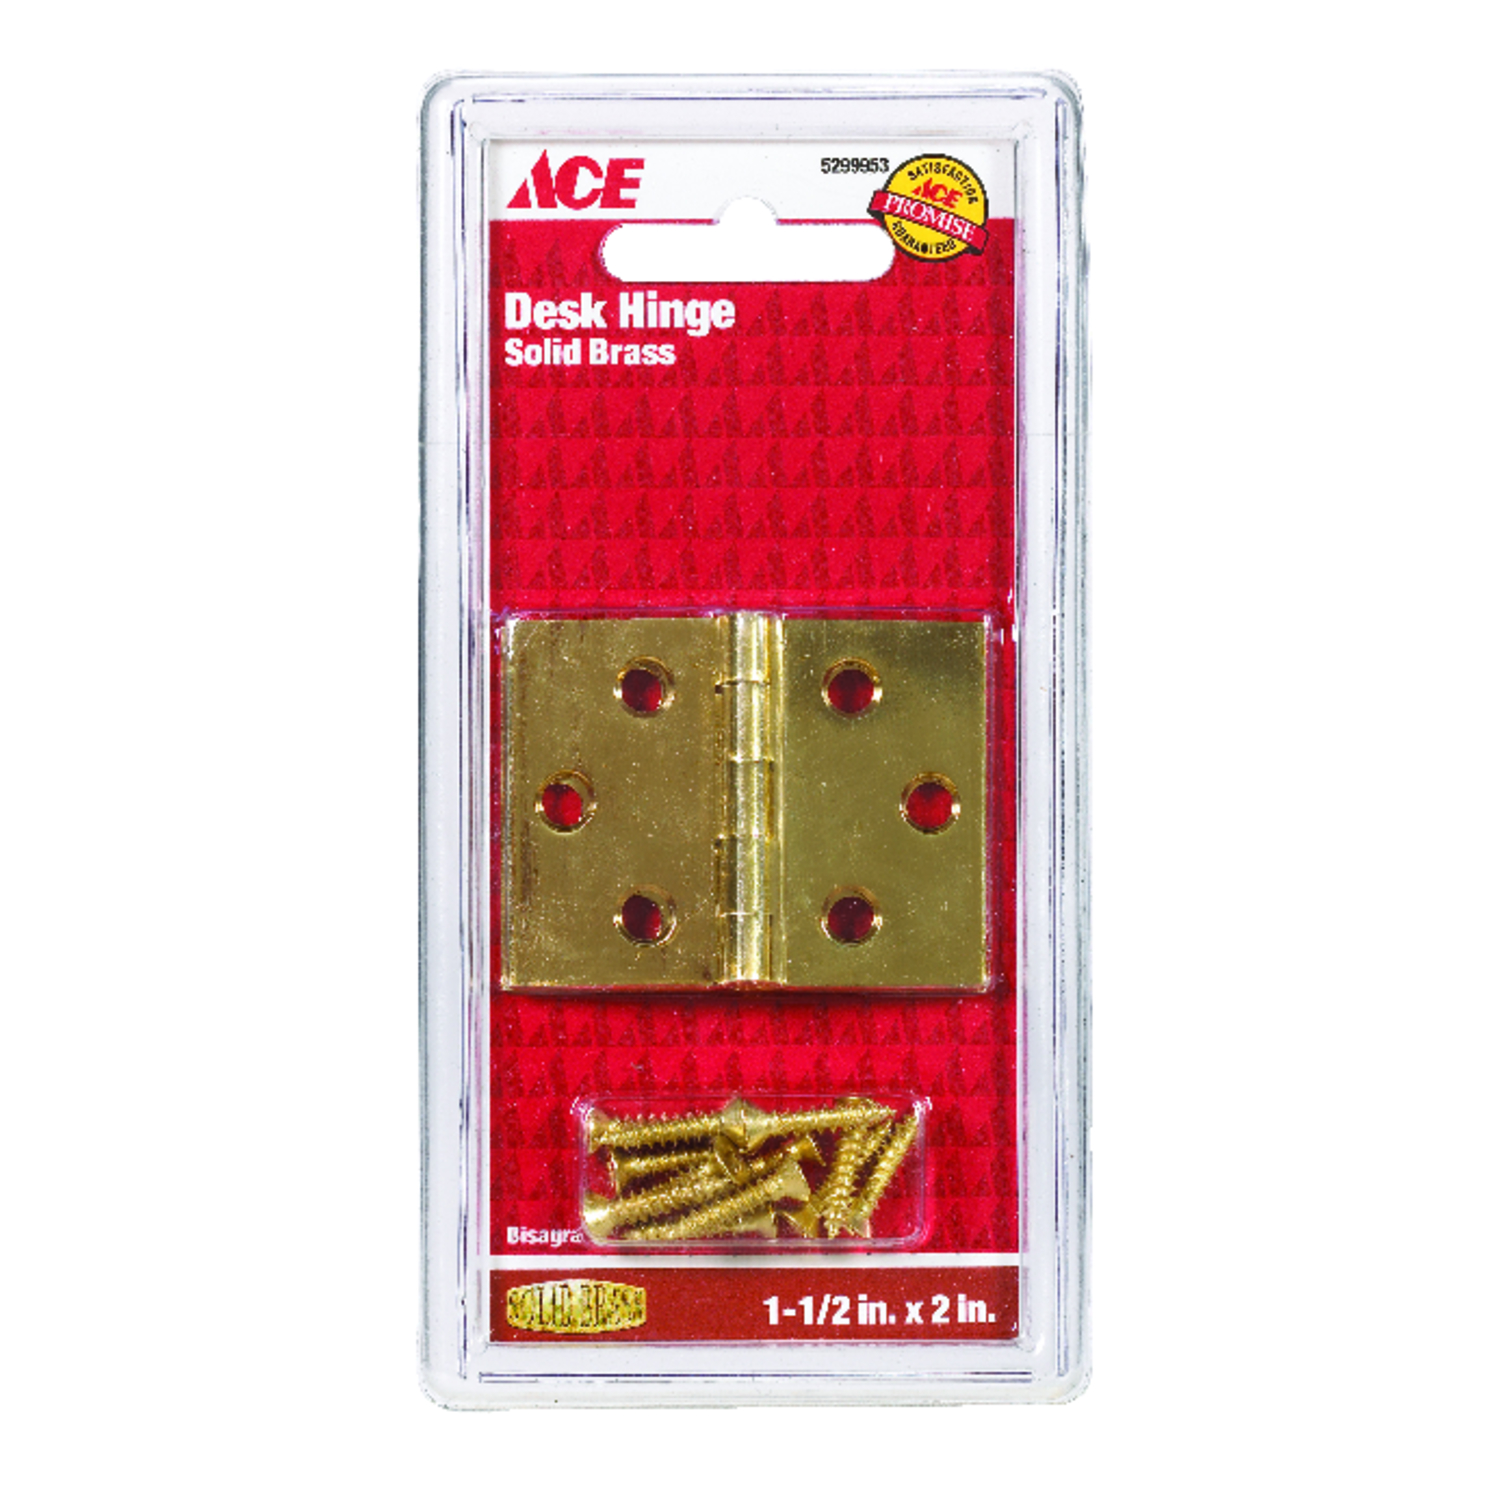 Ace  2.75 in. W x 1-1/2 in. L Polished Brass  Brass  Desk Hinge  2 pk